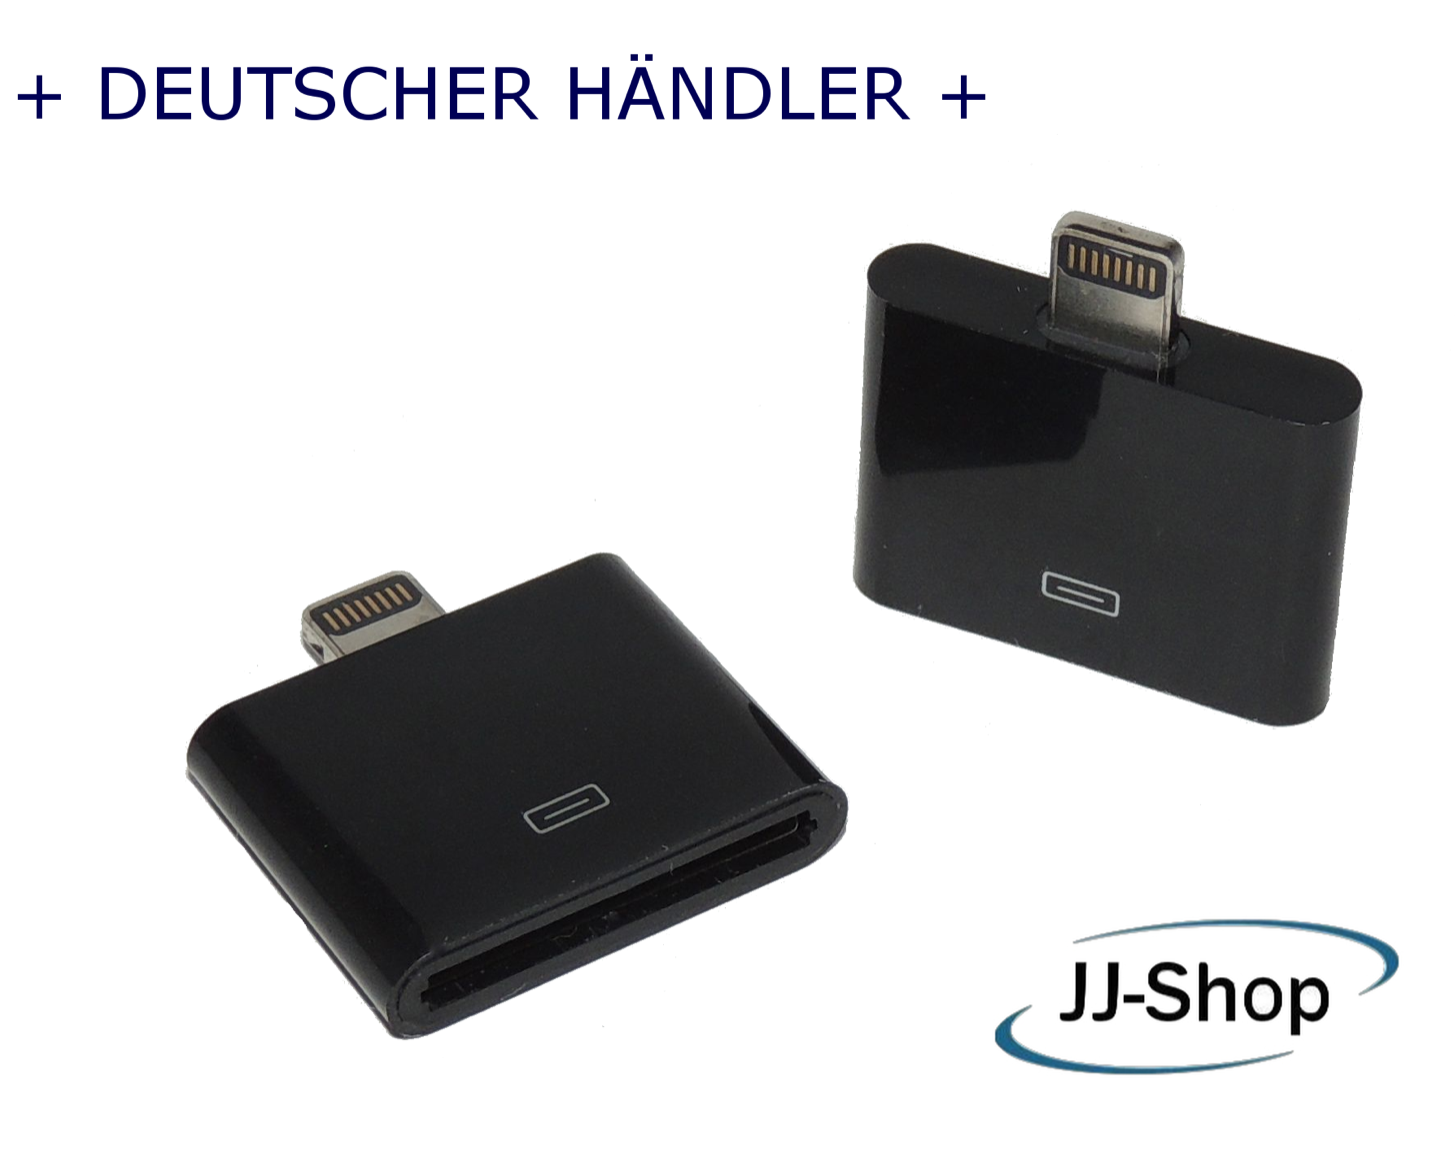 Lightning Adapter 8 auf 30-Polig für Apple iPhone 6 5 iPod iPad iPhone 4 schwarz